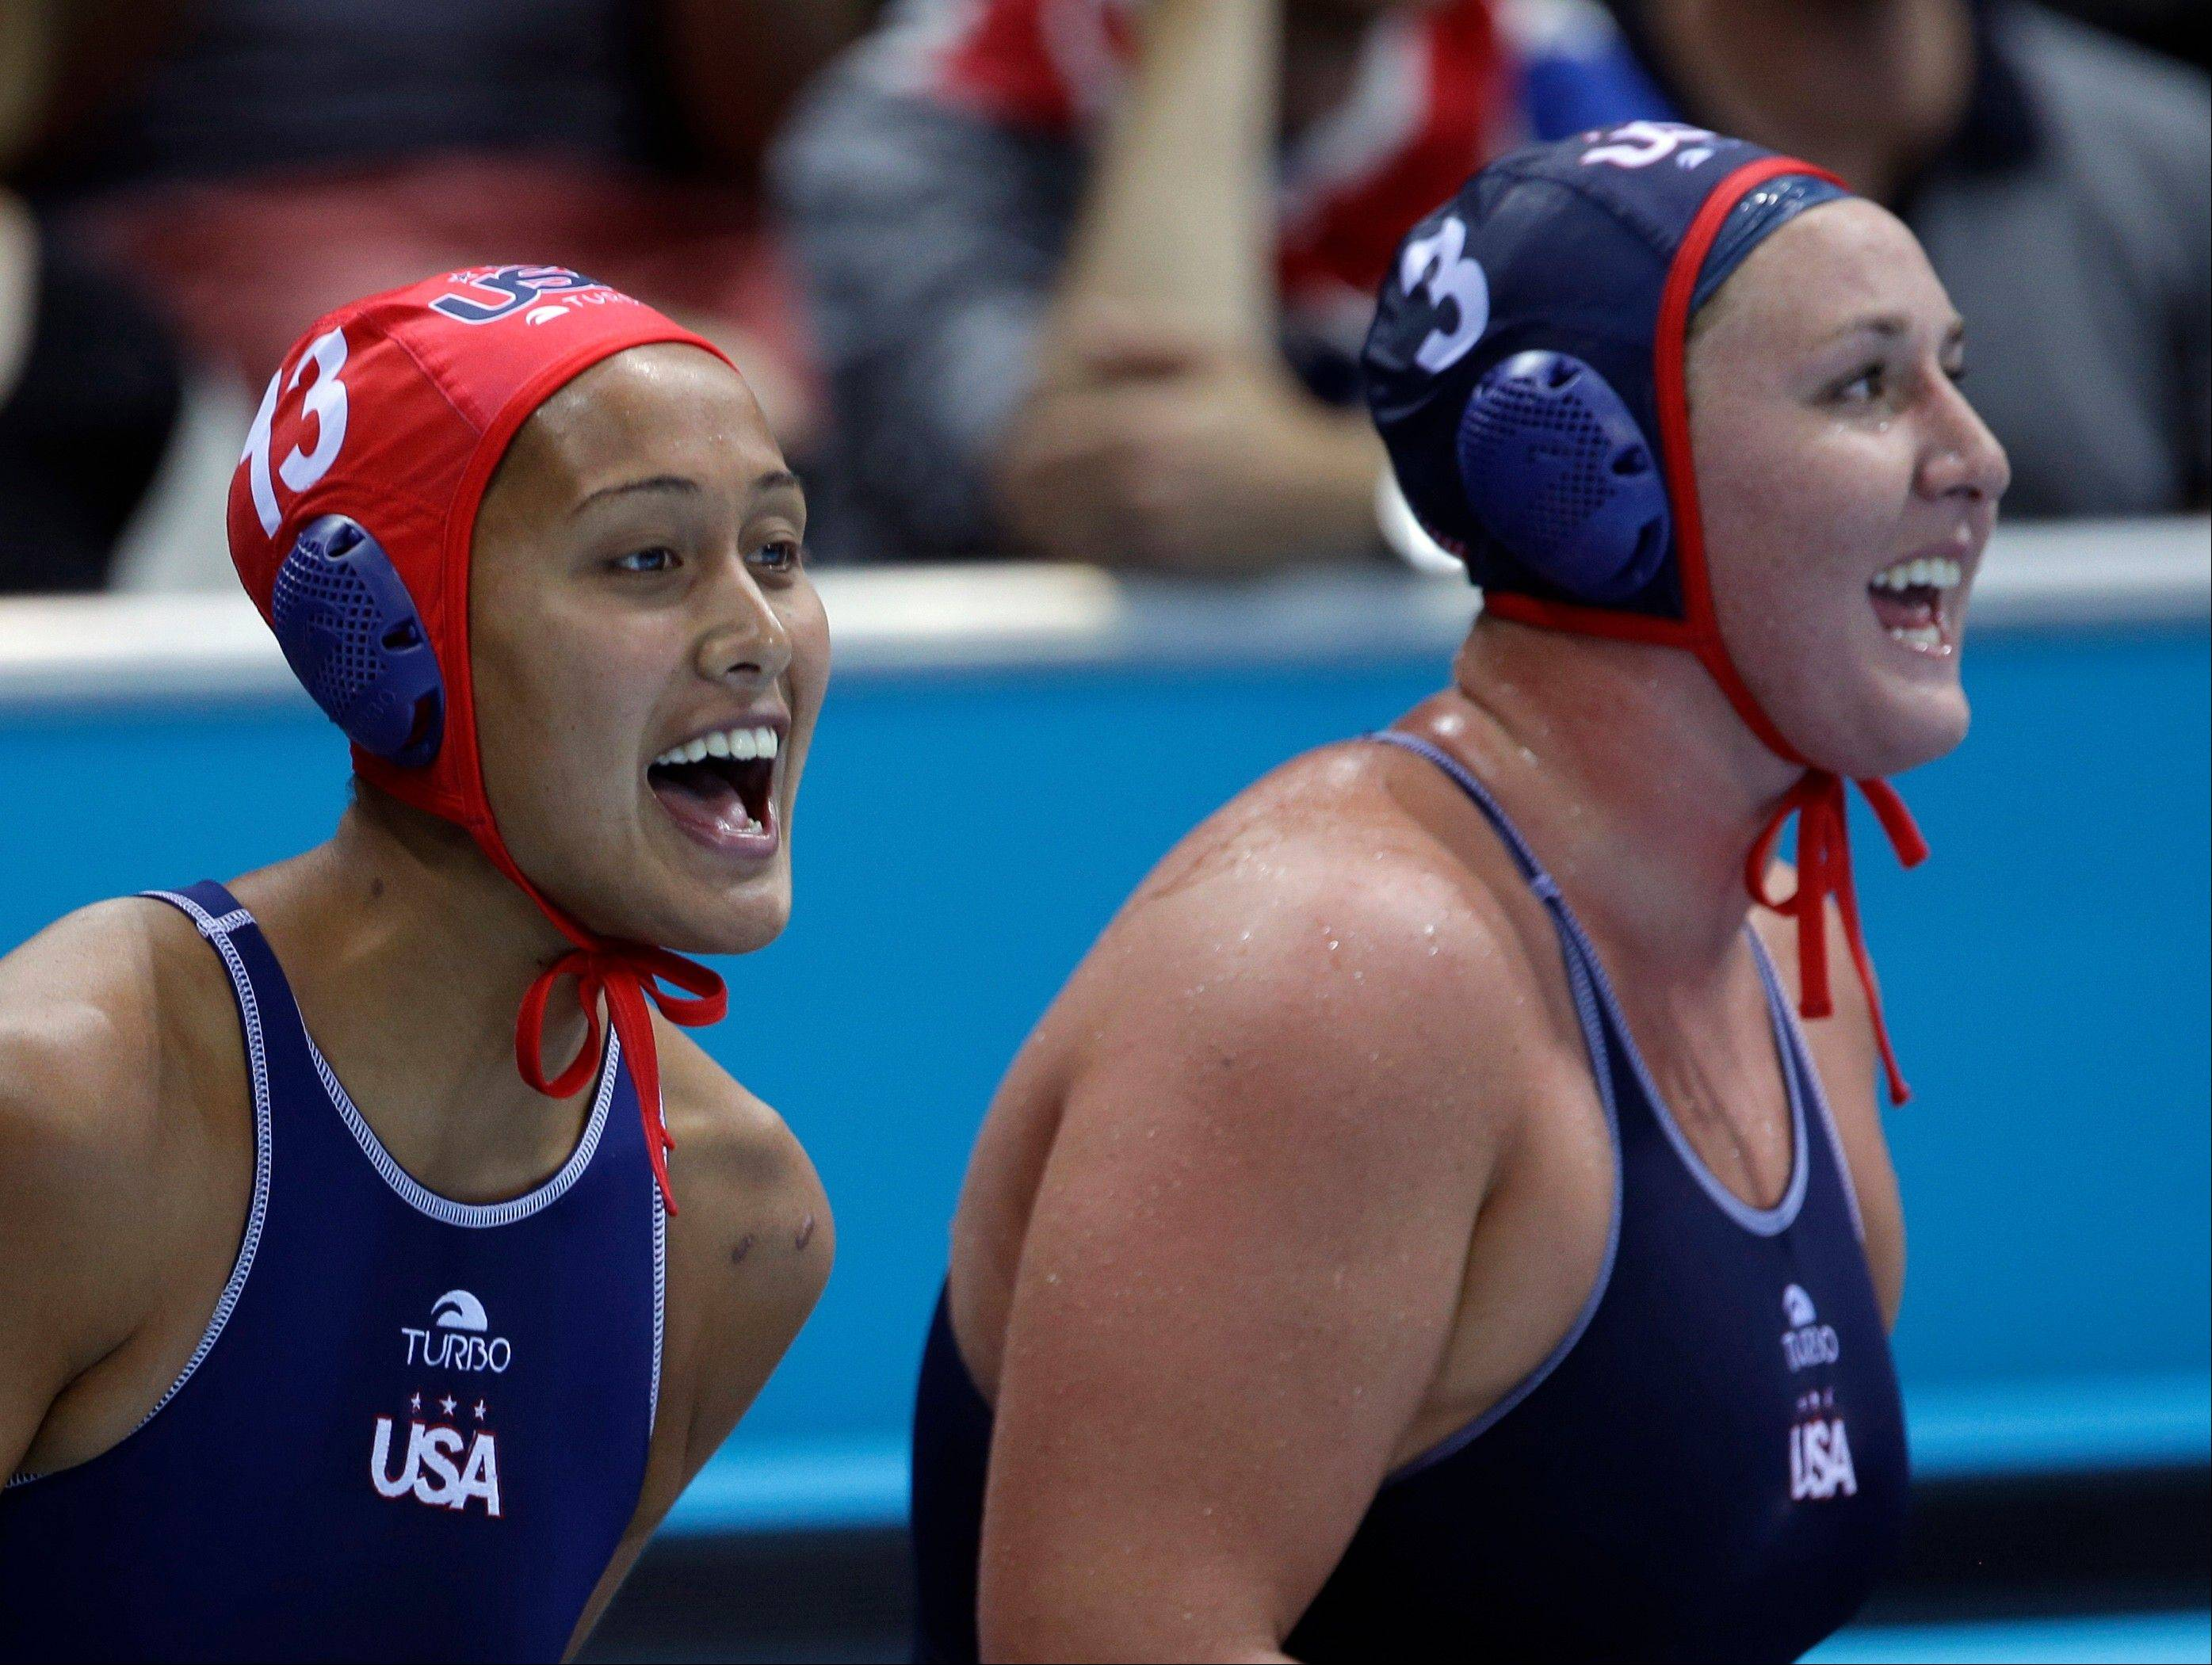 United States women's water polo athletes Tumua Anae, left, and Melissa Seidemann react during a preliminary women's water polo match against Spain Wednesday at the 2012 Summer Olympics.